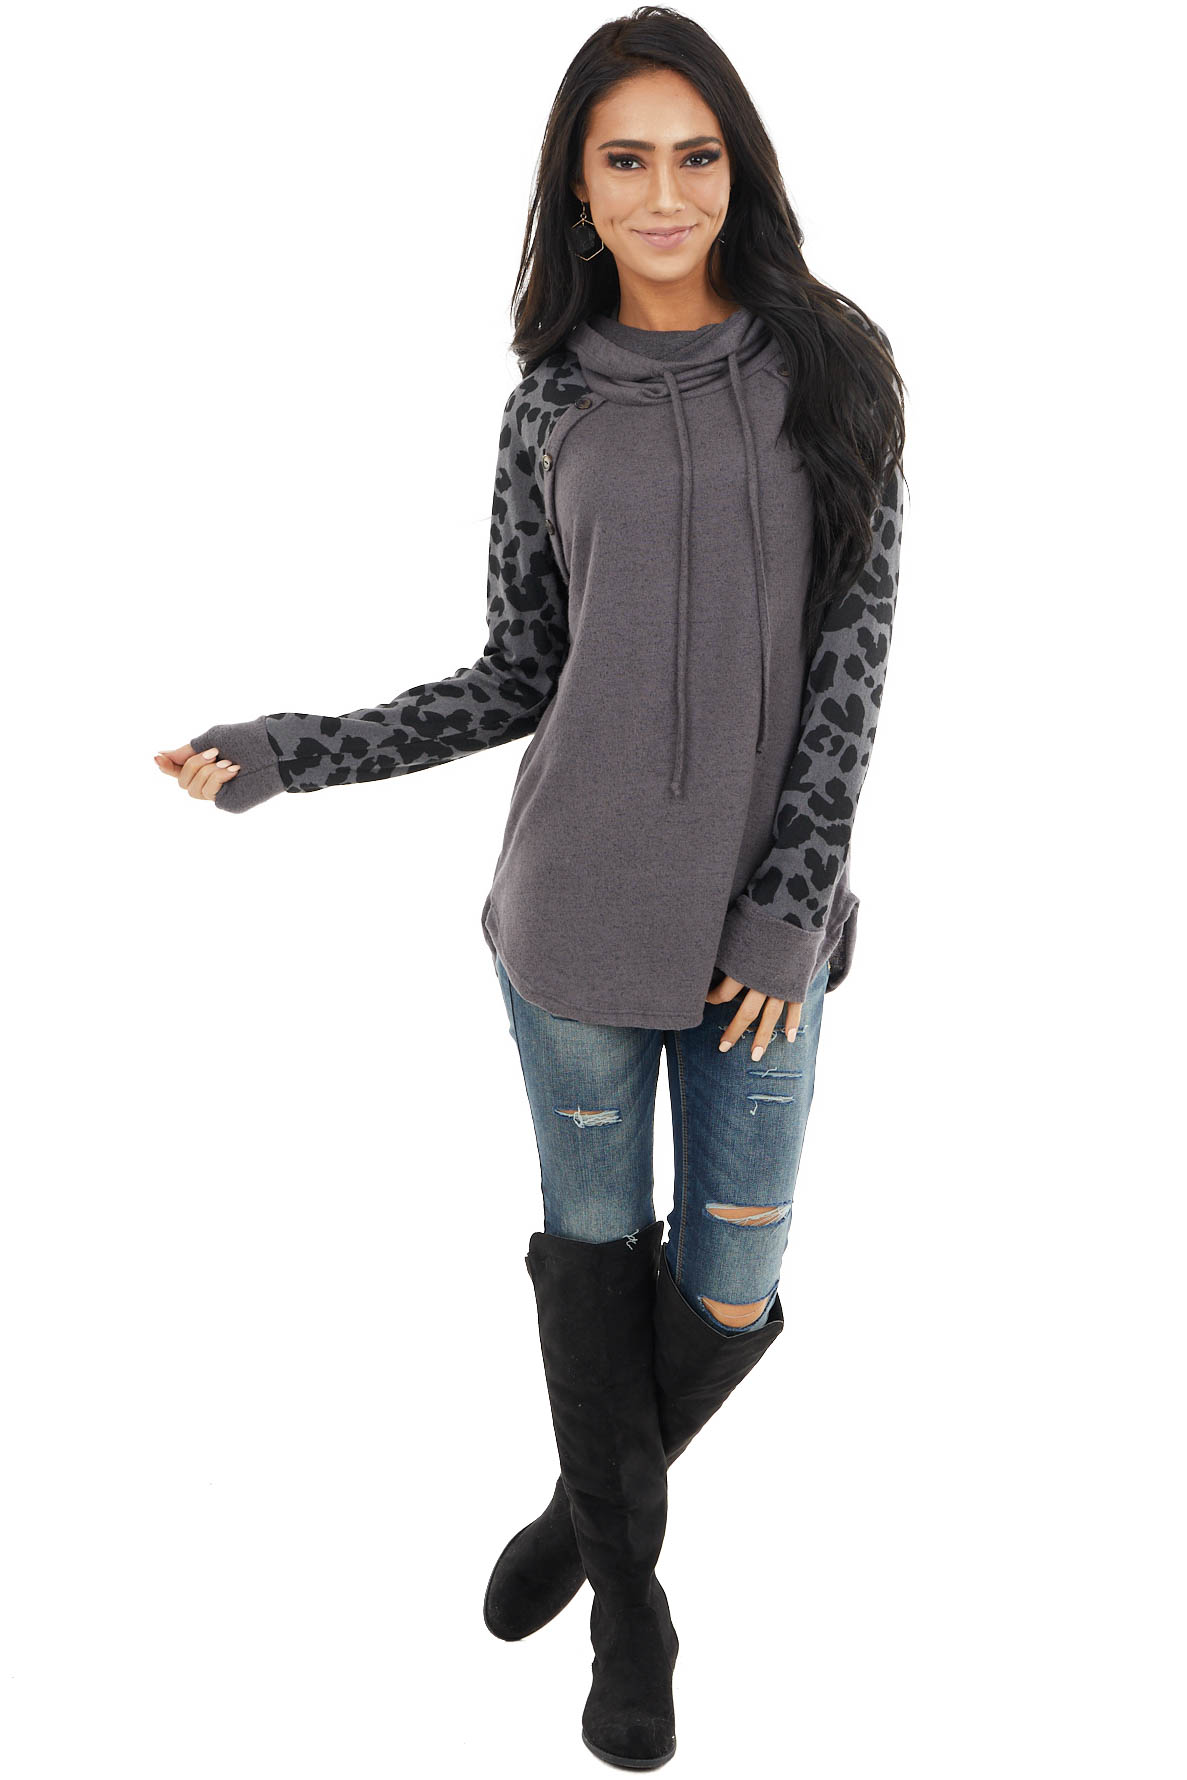 Charcoal Cowl Neck Top with Leopard Sleeves and Buttons